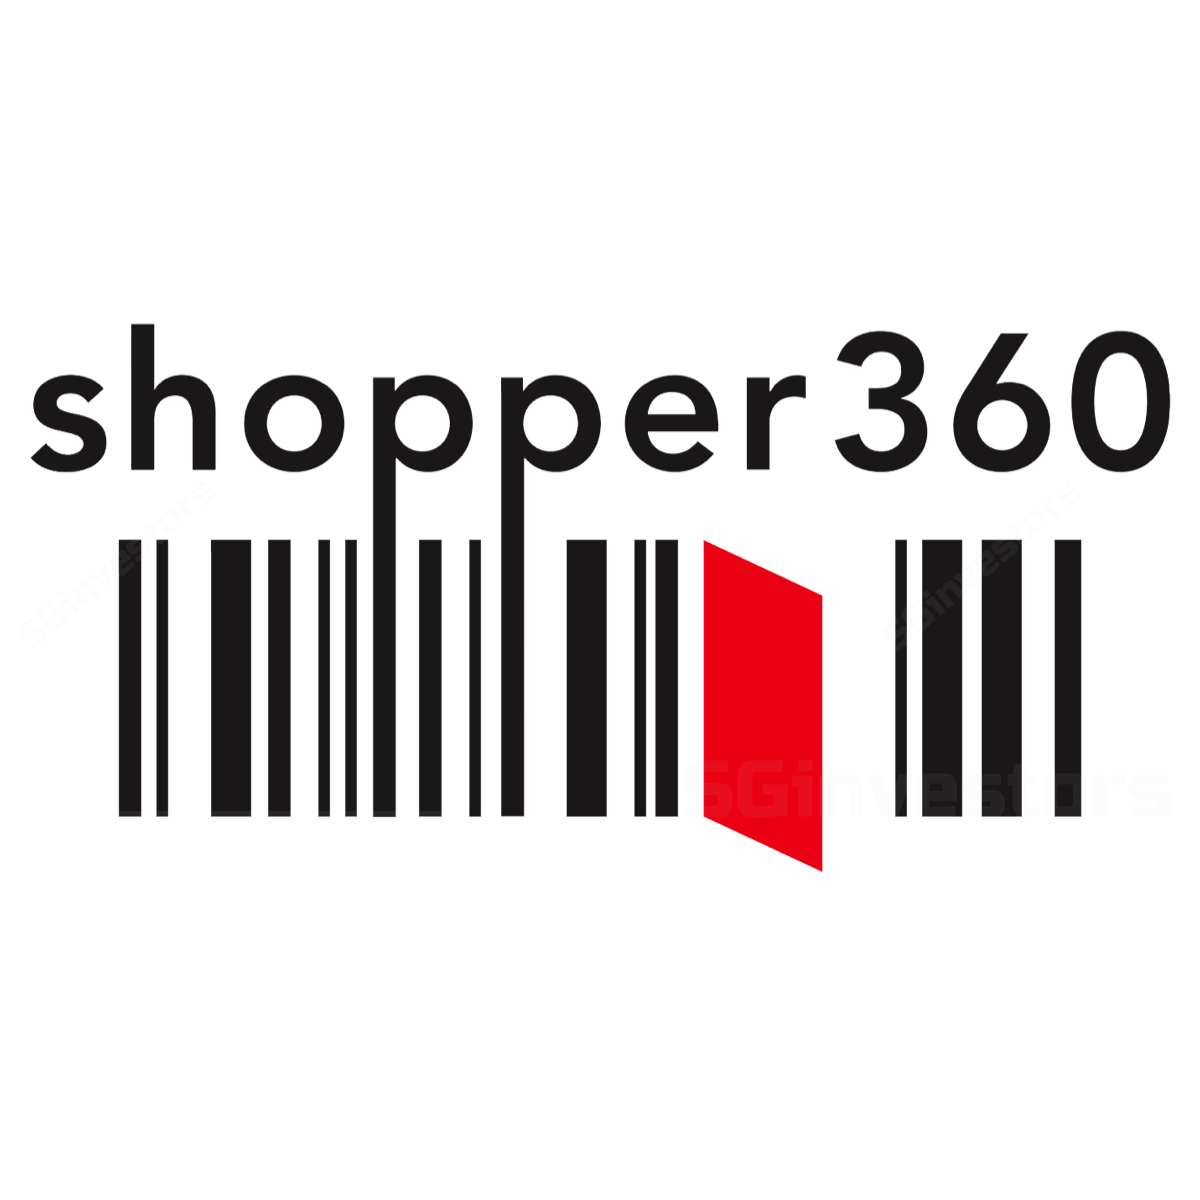 Shopper360 Limited - Phillip Securities 2018-06-13: The Key To Win Consumers' Dollars